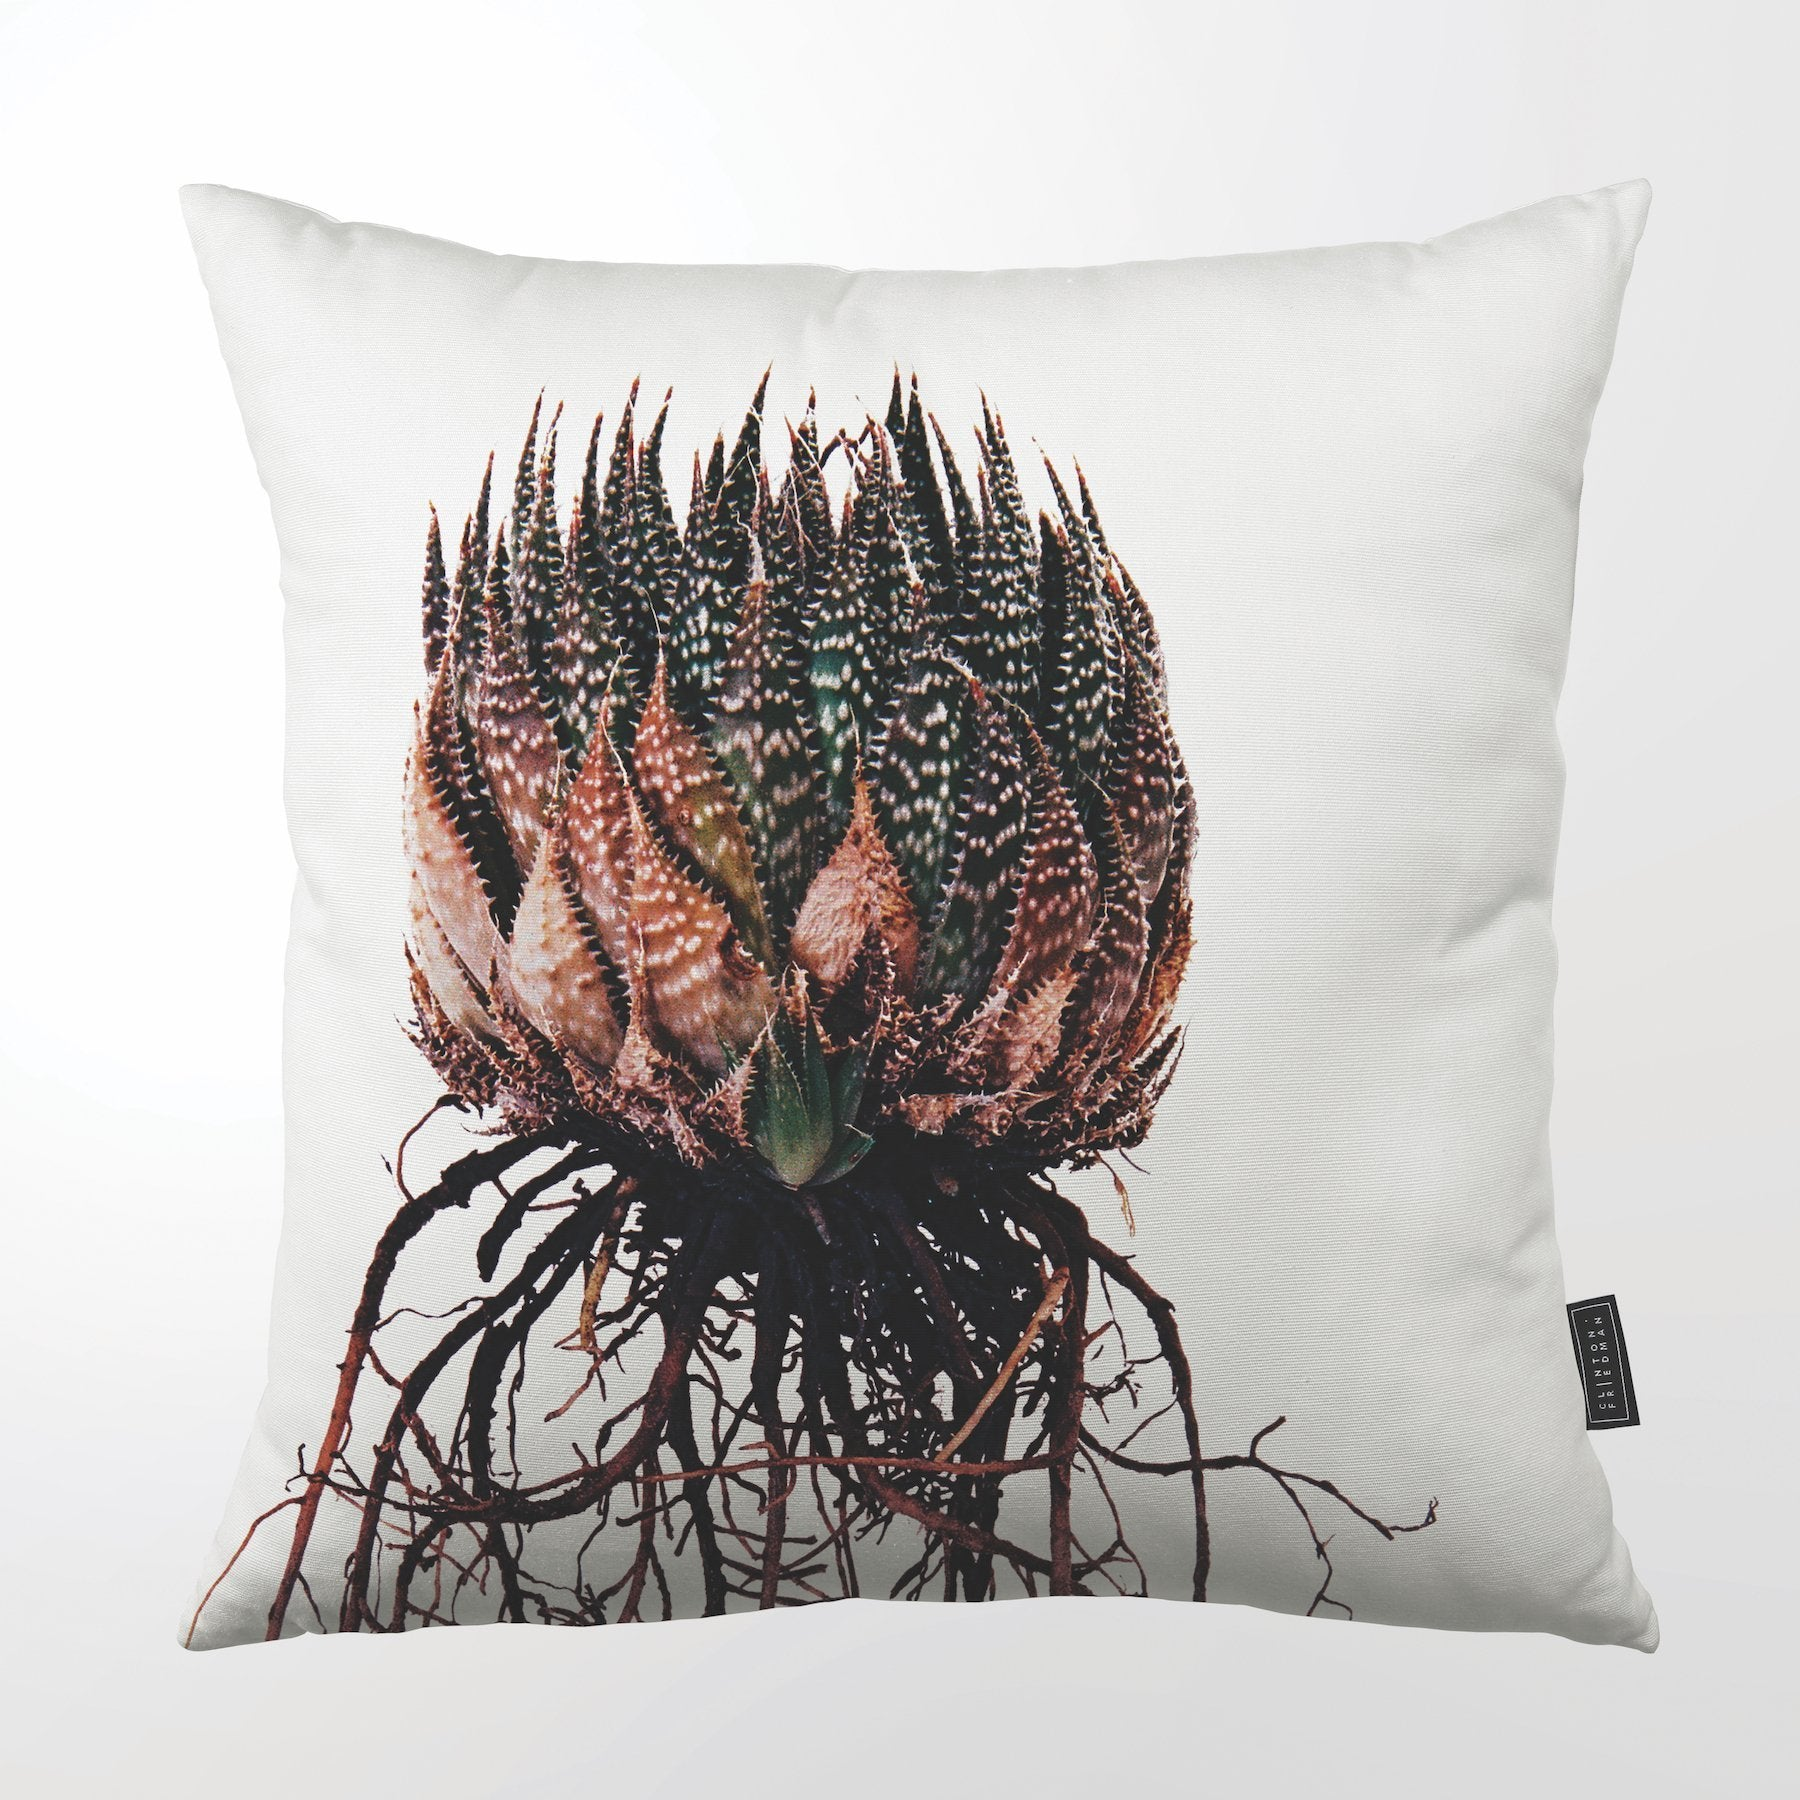 CLINTON FRIEDMAN NEW YORK USA ARISTATA ALOE THROW PILLOW